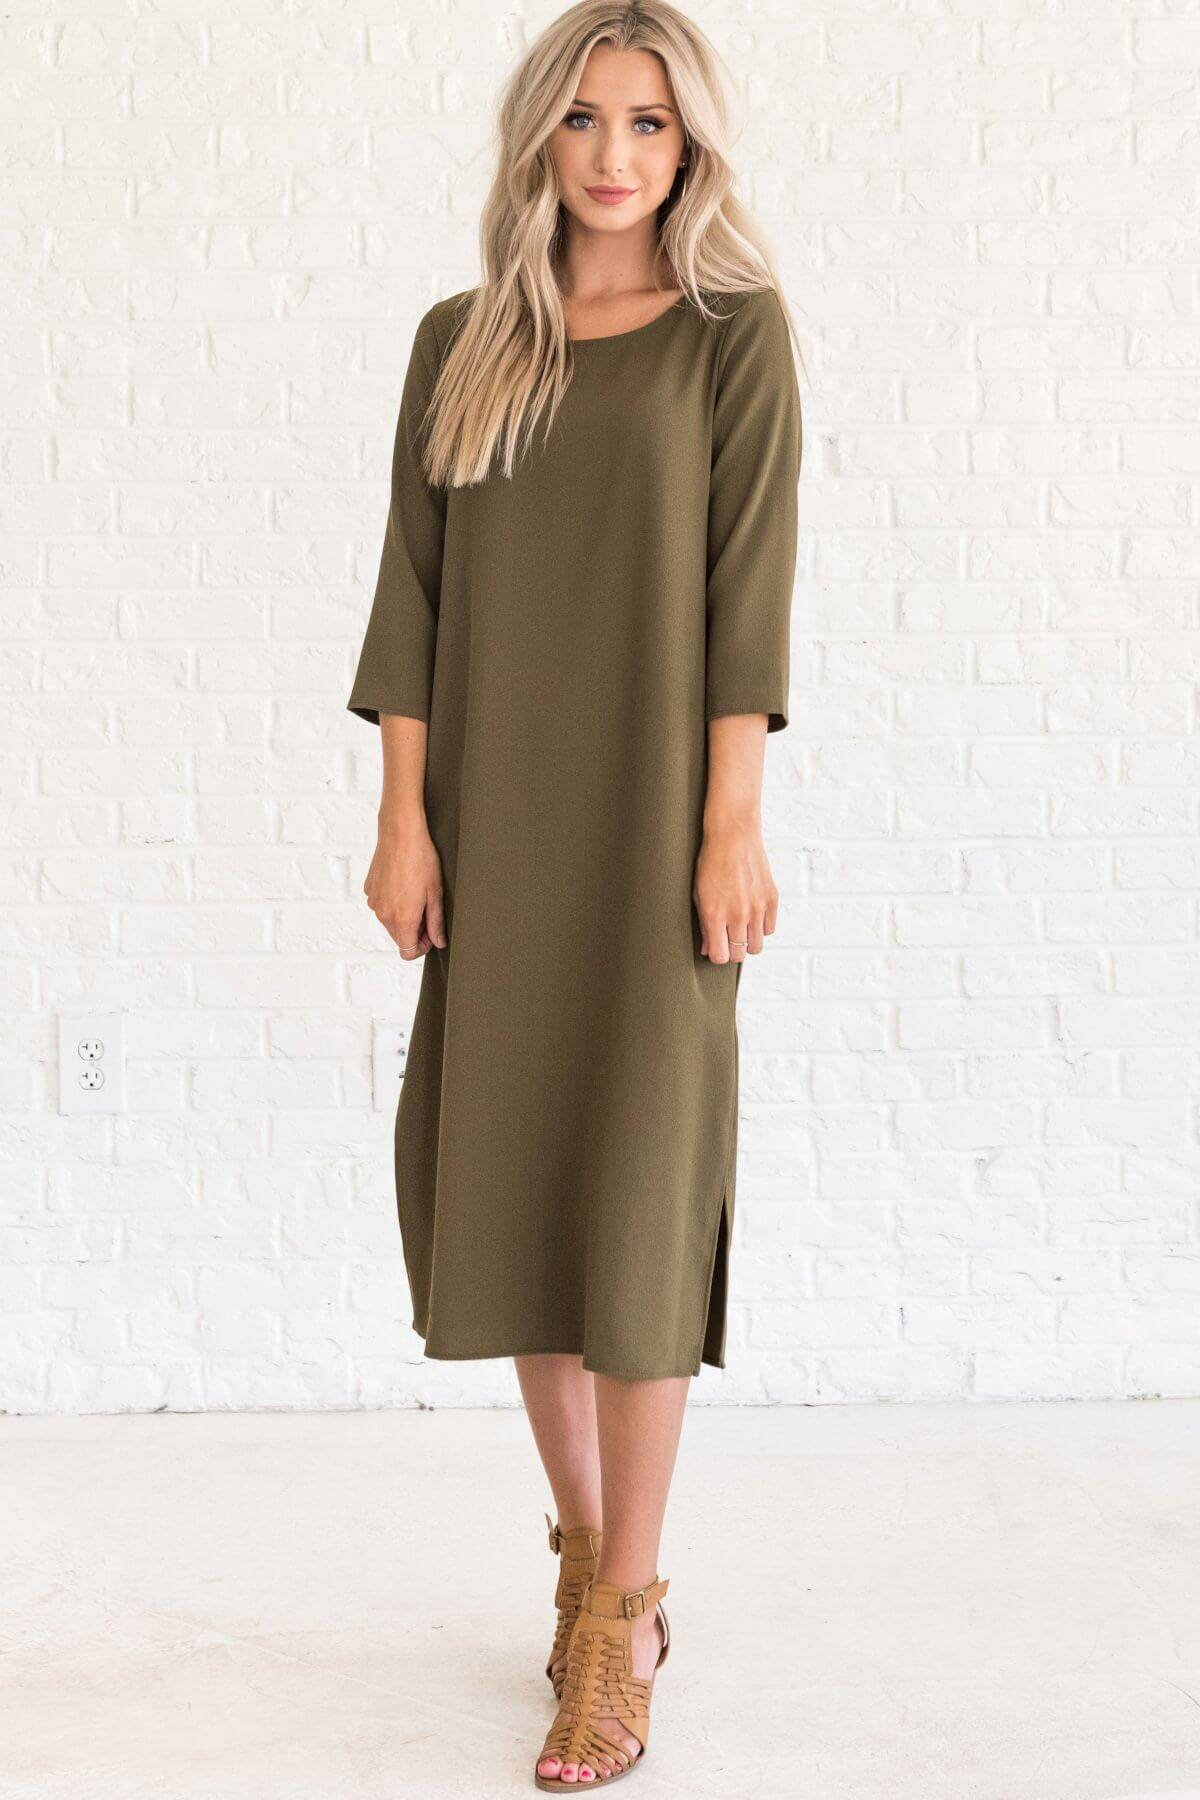 Olive Green 3/4 Sleeve Midi Dresses Business Casual for Women